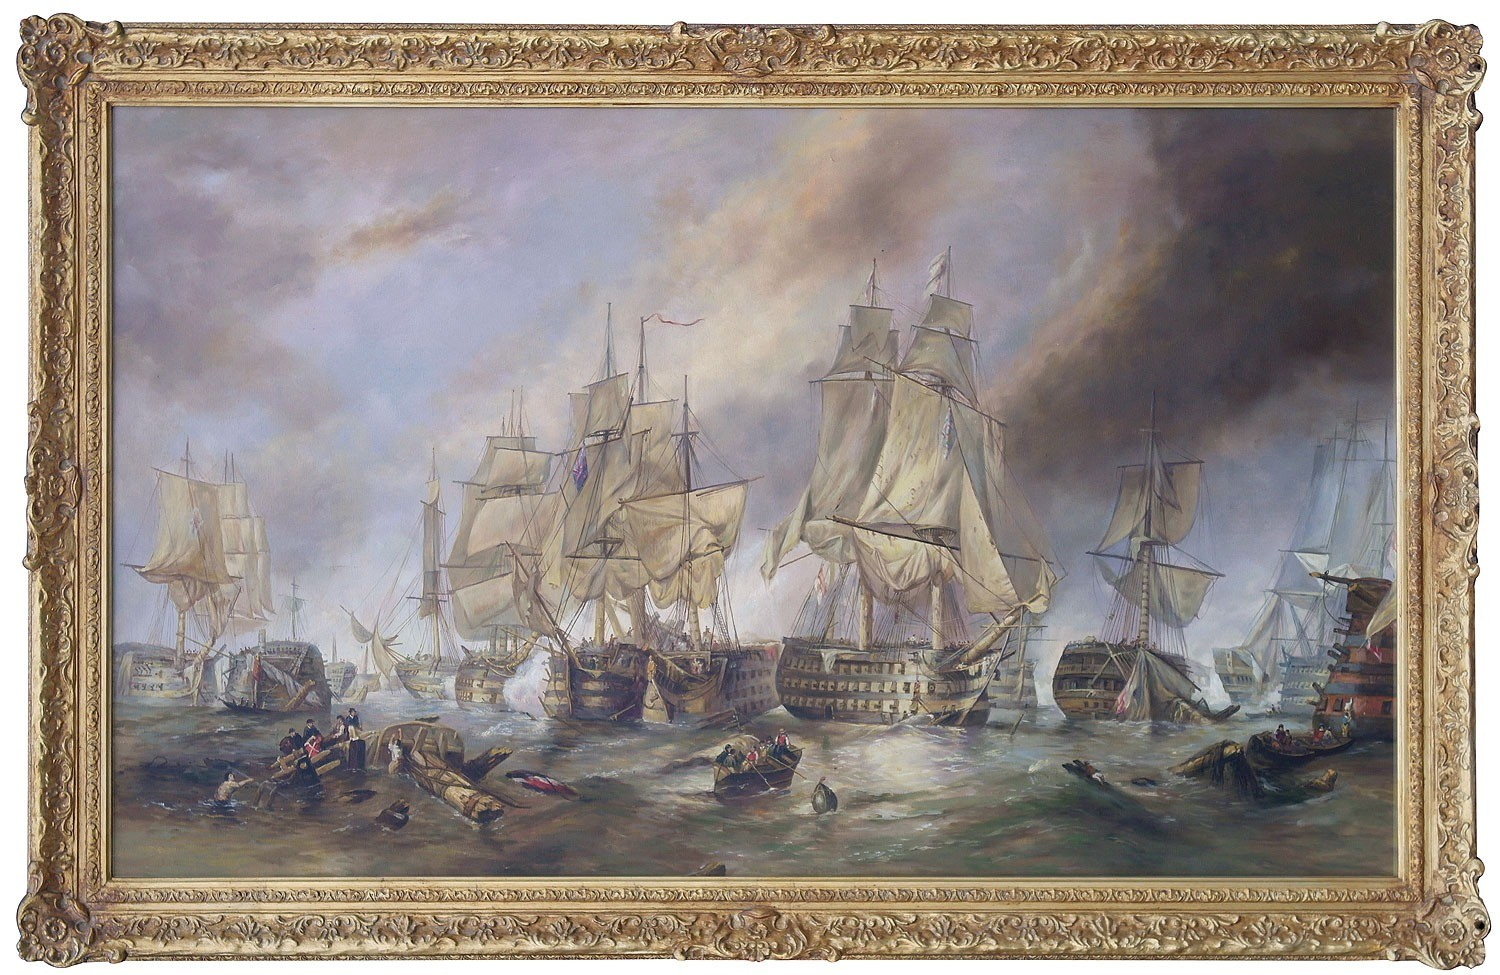 Oil Painting after 'The Battle of Trafalgar' by Clarkson Frederick Stanfield